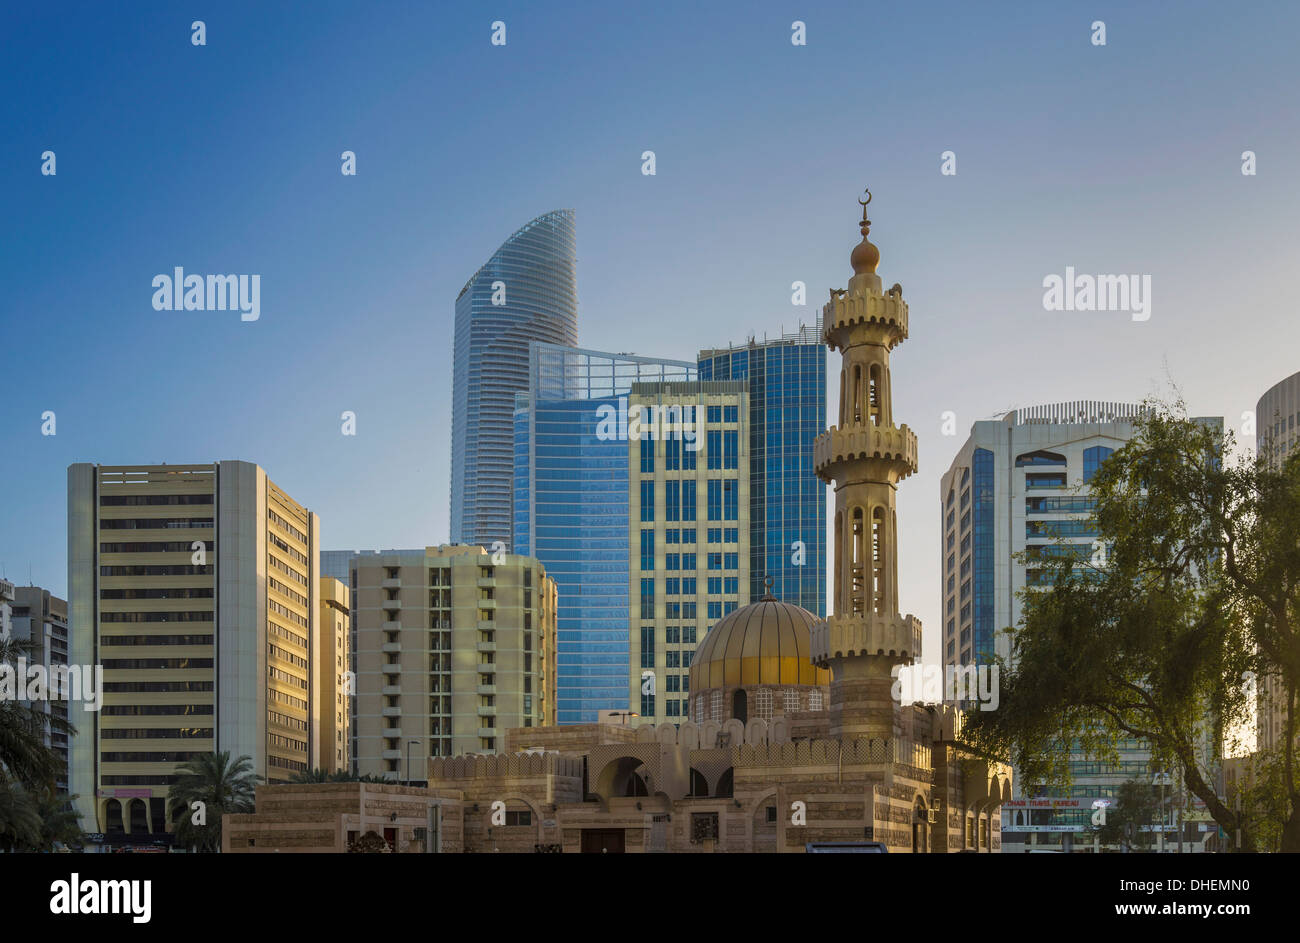 Mosque and modern buildings downtown Abu Dhabi, United Arab Emirates, Middle East - Stock Image